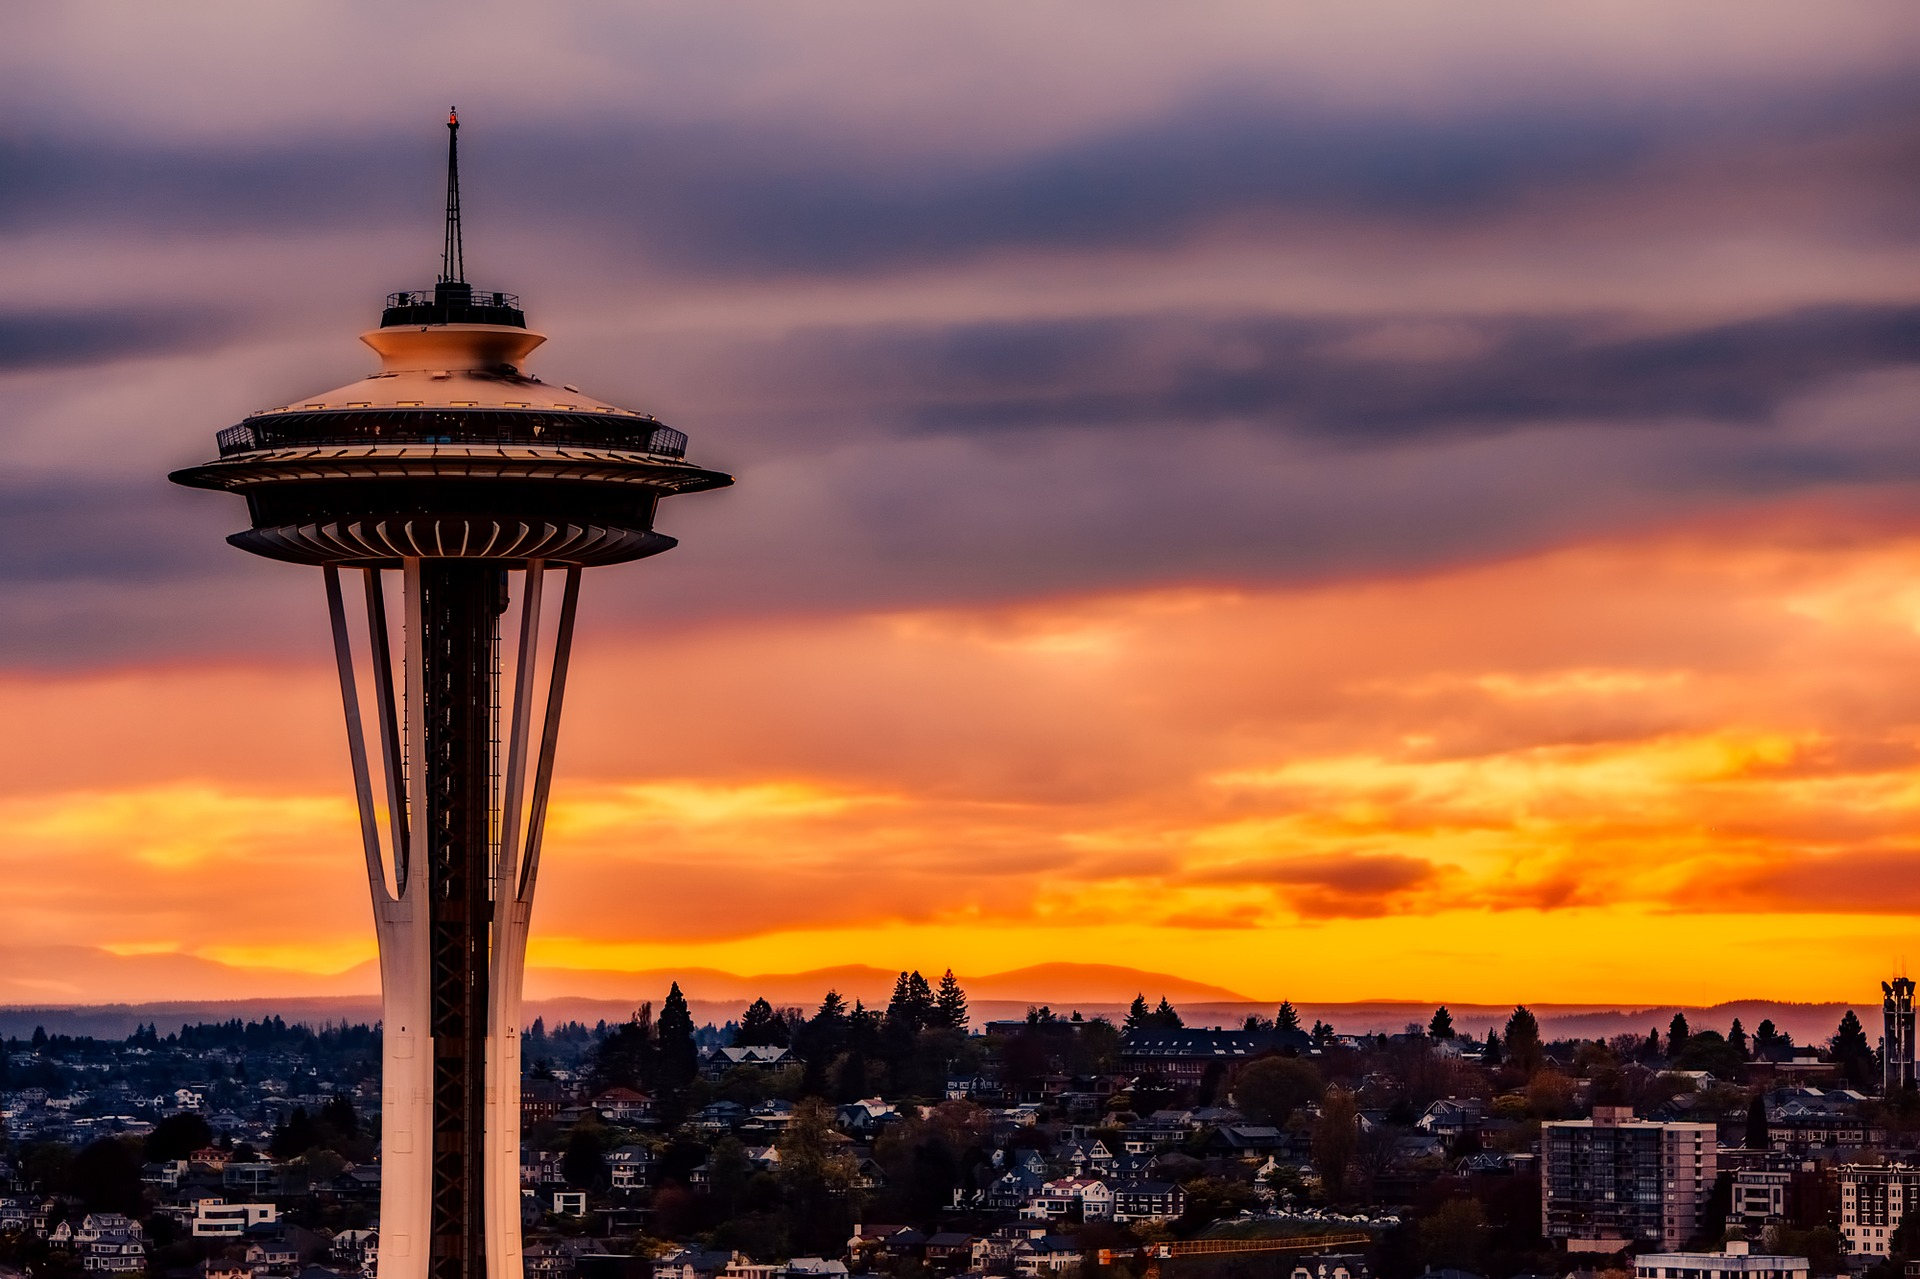 SEATTLE SCREENWRITING AWARDS HONORS COMPETITION FILMFREEWAY WITHOUTABOX